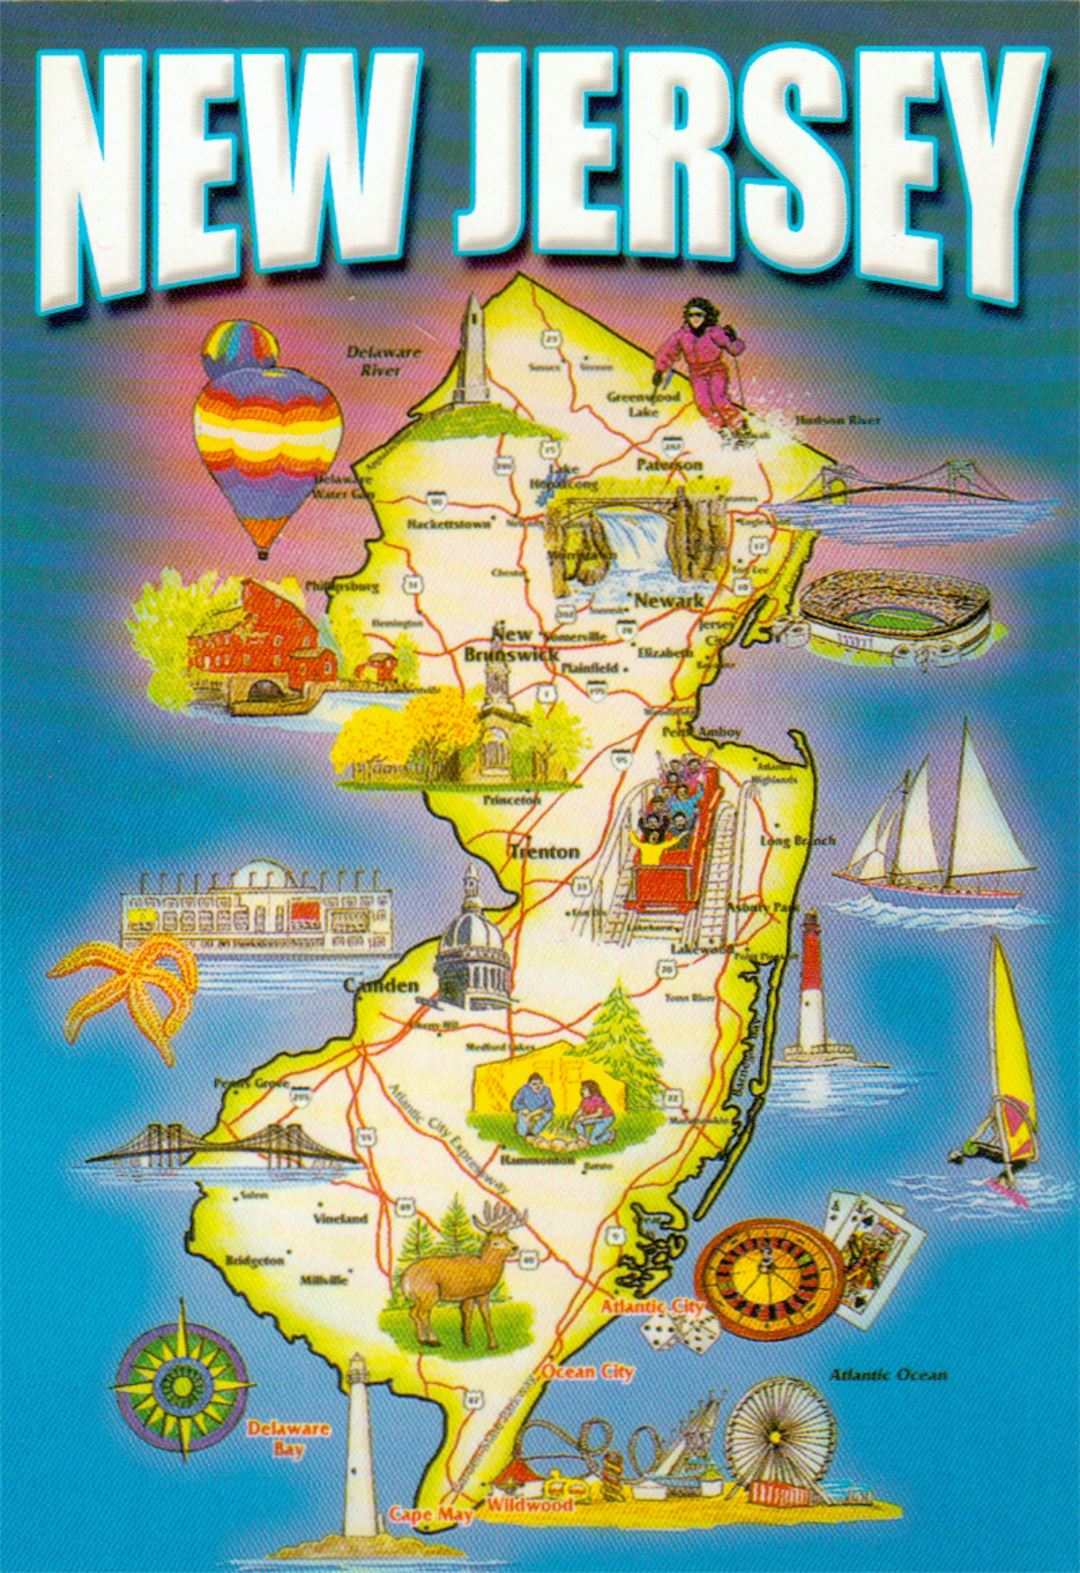 Detailed Tourist Map Of New Jersey State New Jersey State USA - Detailed map of nj